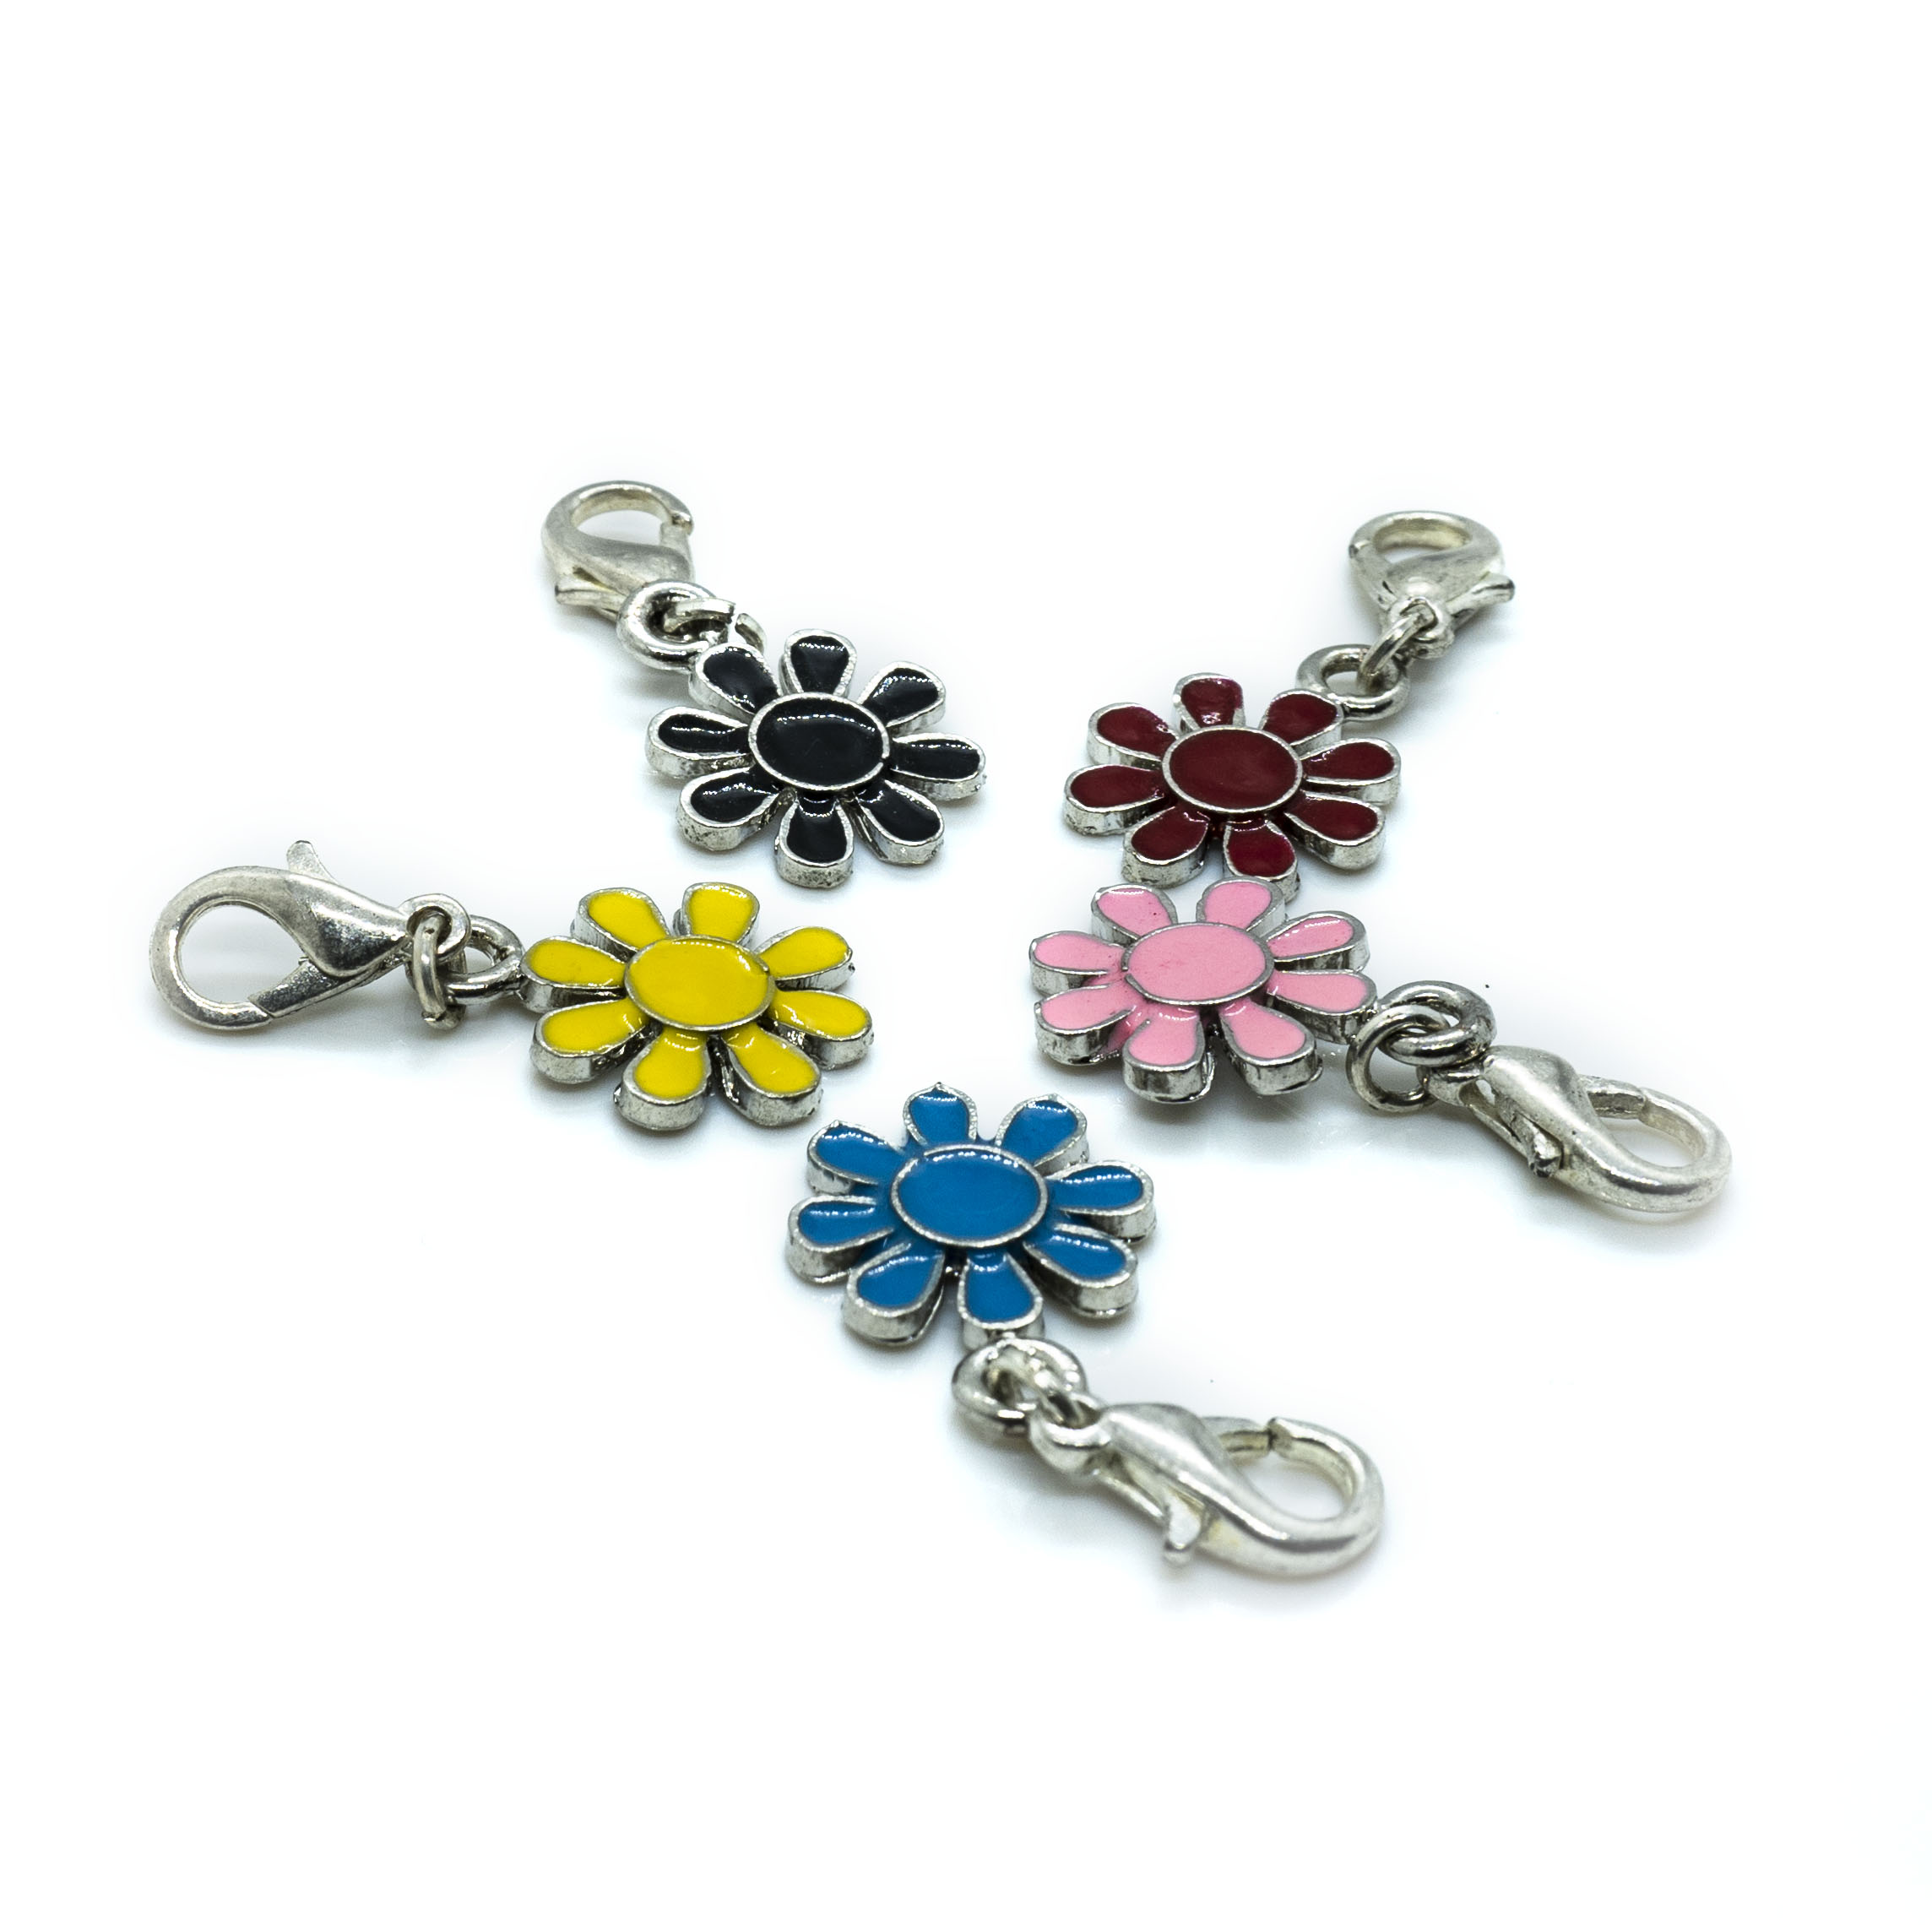 Flower Enamel Charm with Lobster Clasp - 30x14mm - 1pc